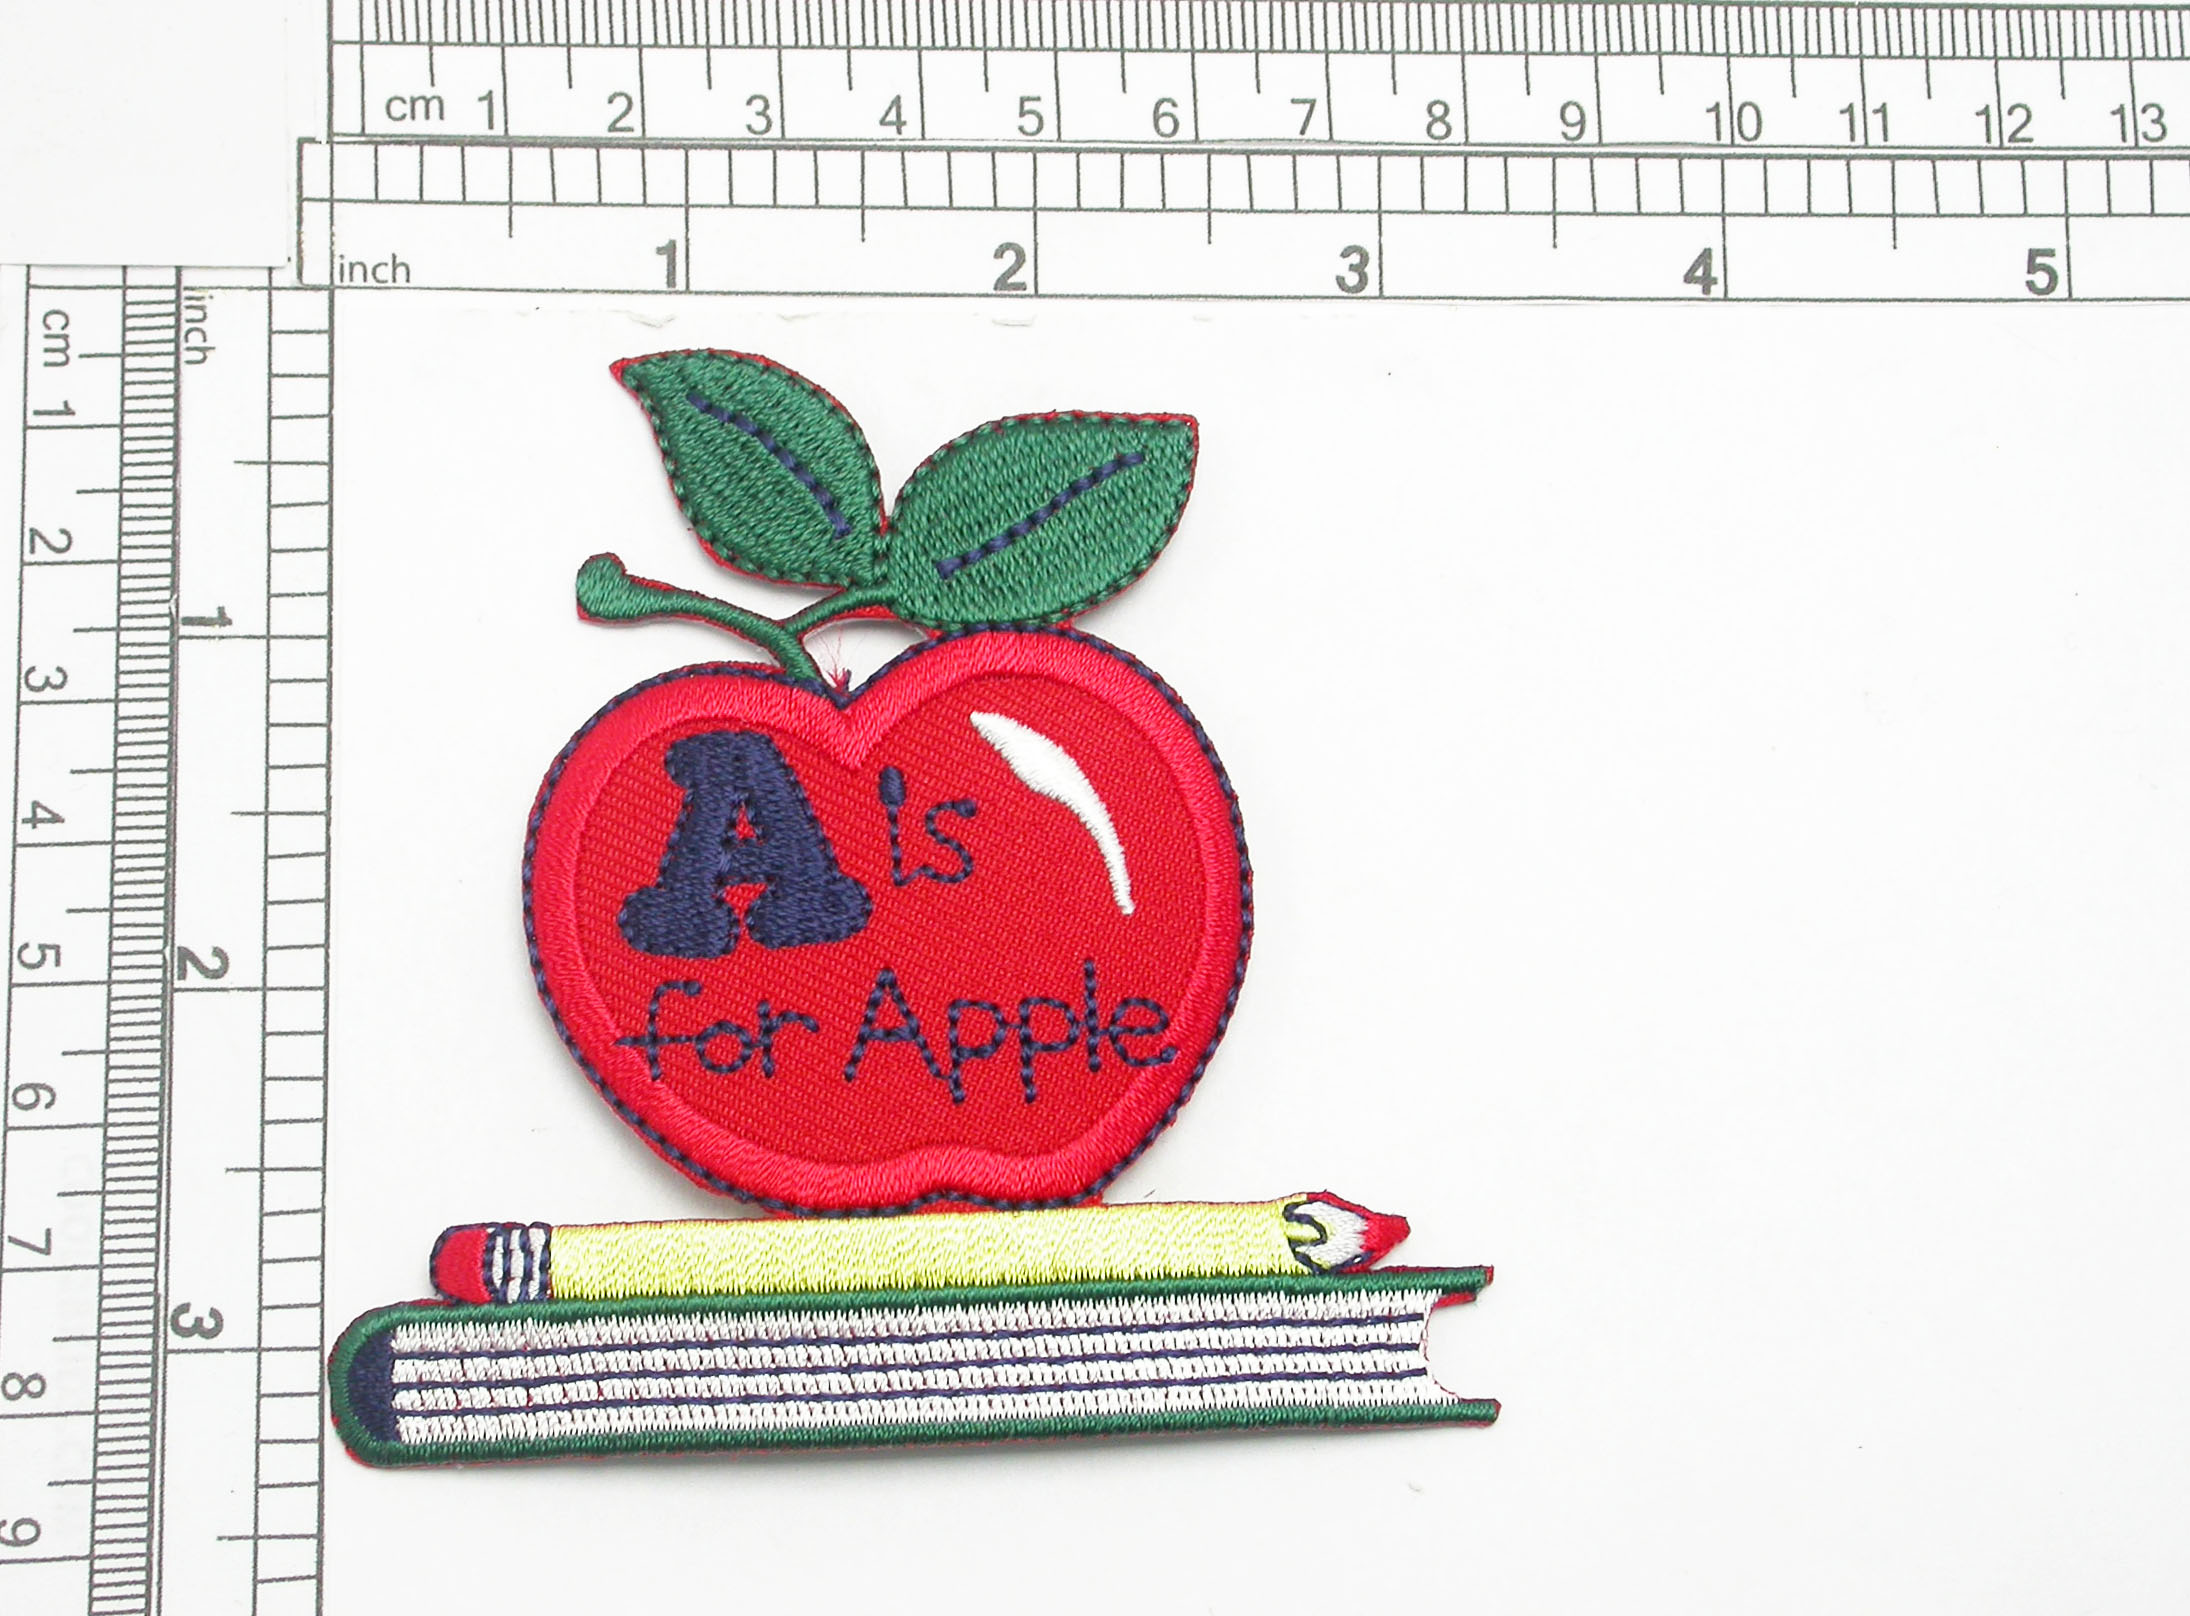 """A Is for Apple Classroom Teaching Iron On Applique  Embroidered on Twill Backing with Rayon Threads  Measures 3 1/4"""" high x 3 1/8"""" wide approximately"""